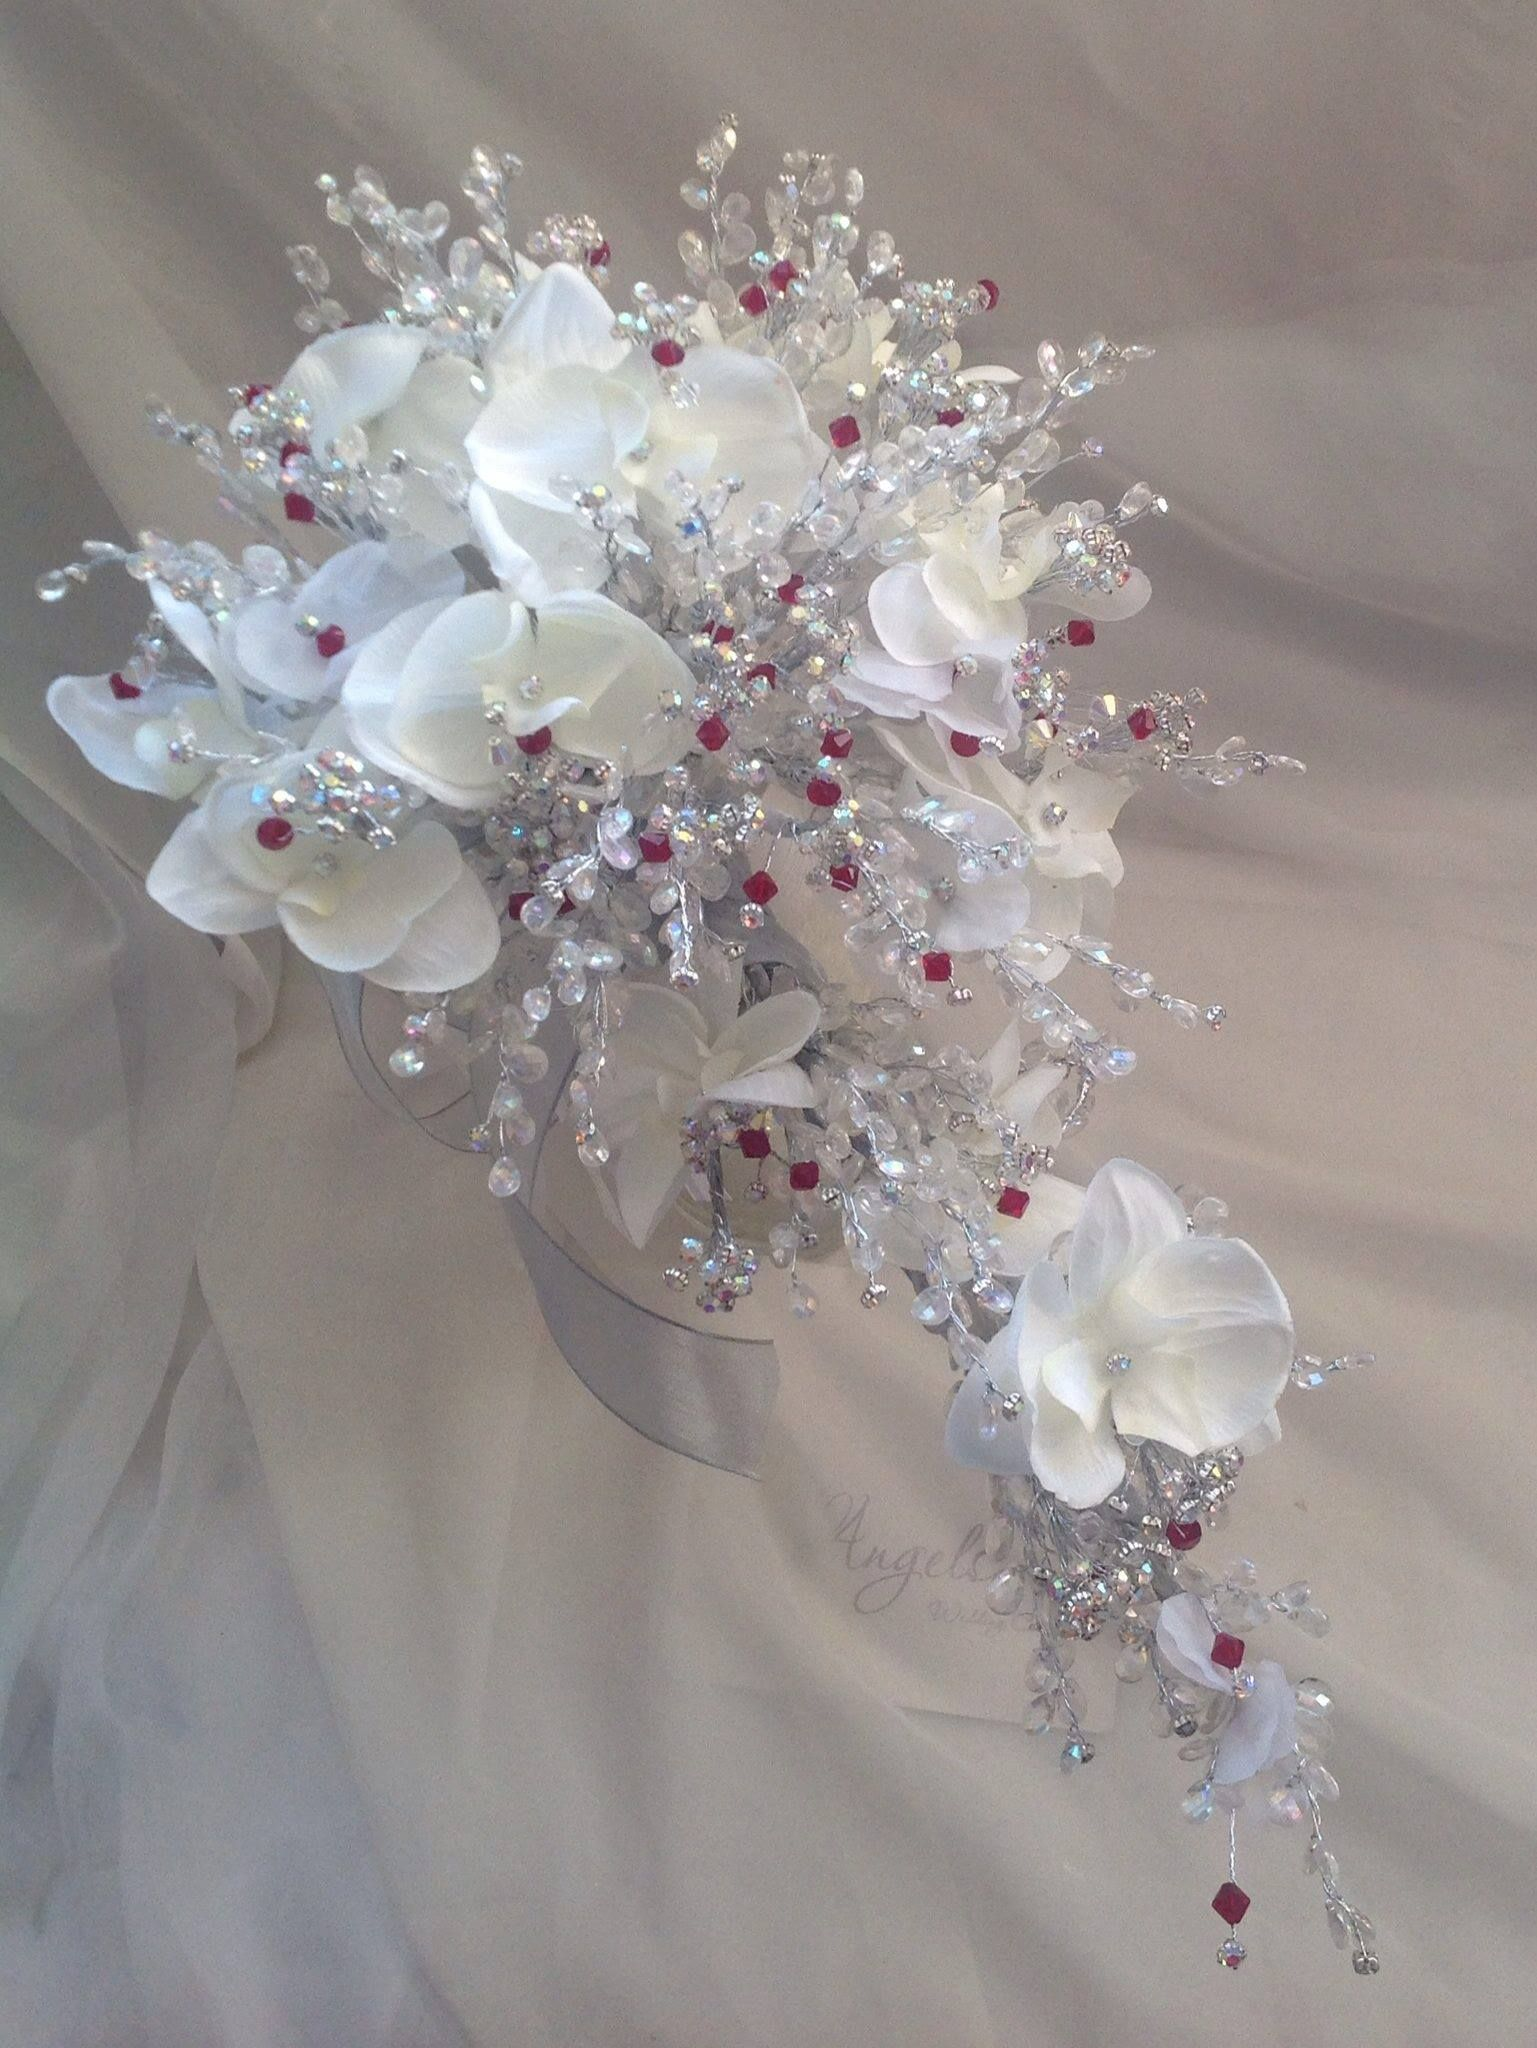 White Orchids Trailing Bouquet With Red And Clear Crystals 12 X 22 Inches GBP22500